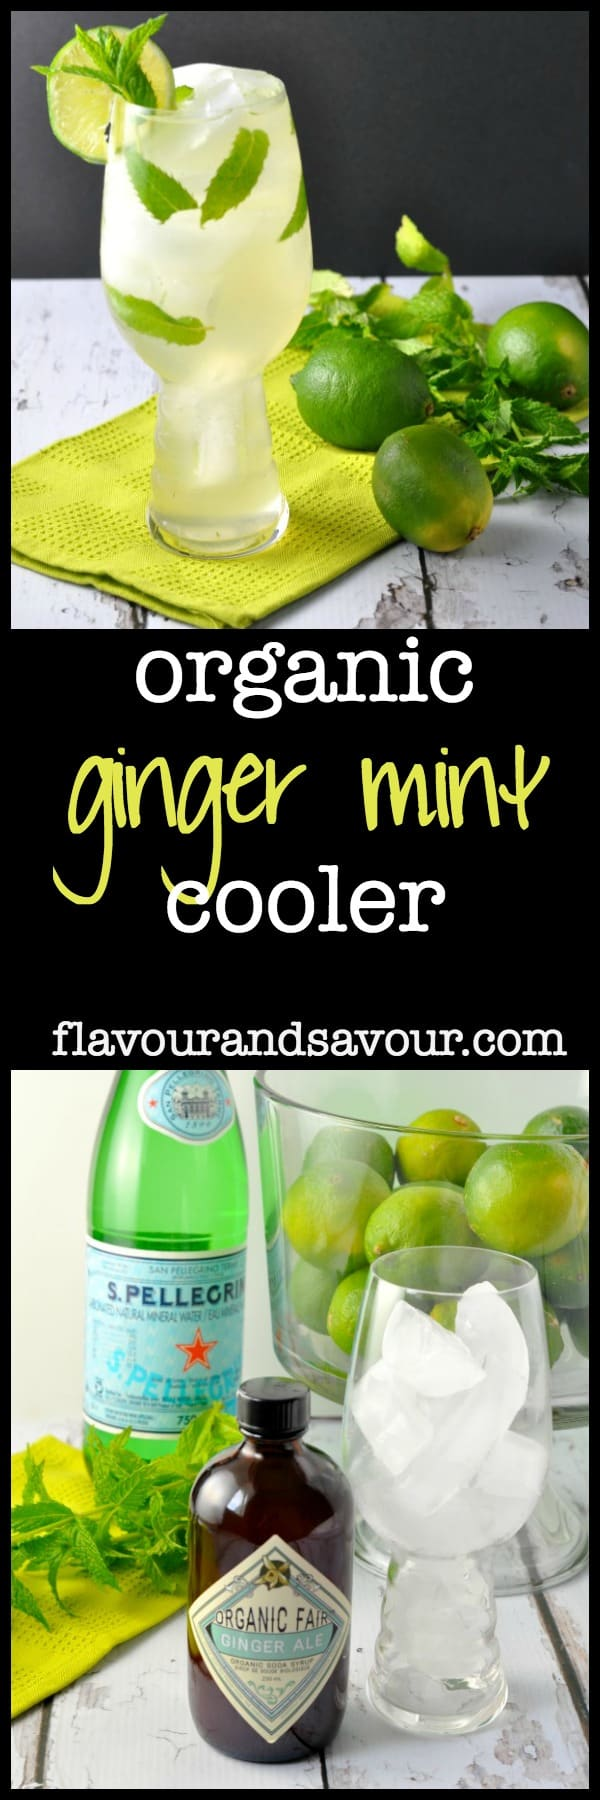 Ginger Mint Cooler. Make it a mocktail or a cocktail! A refreshing drink made with or without alcohol and organic ginger soda syrup |www.flavourandsavour.com